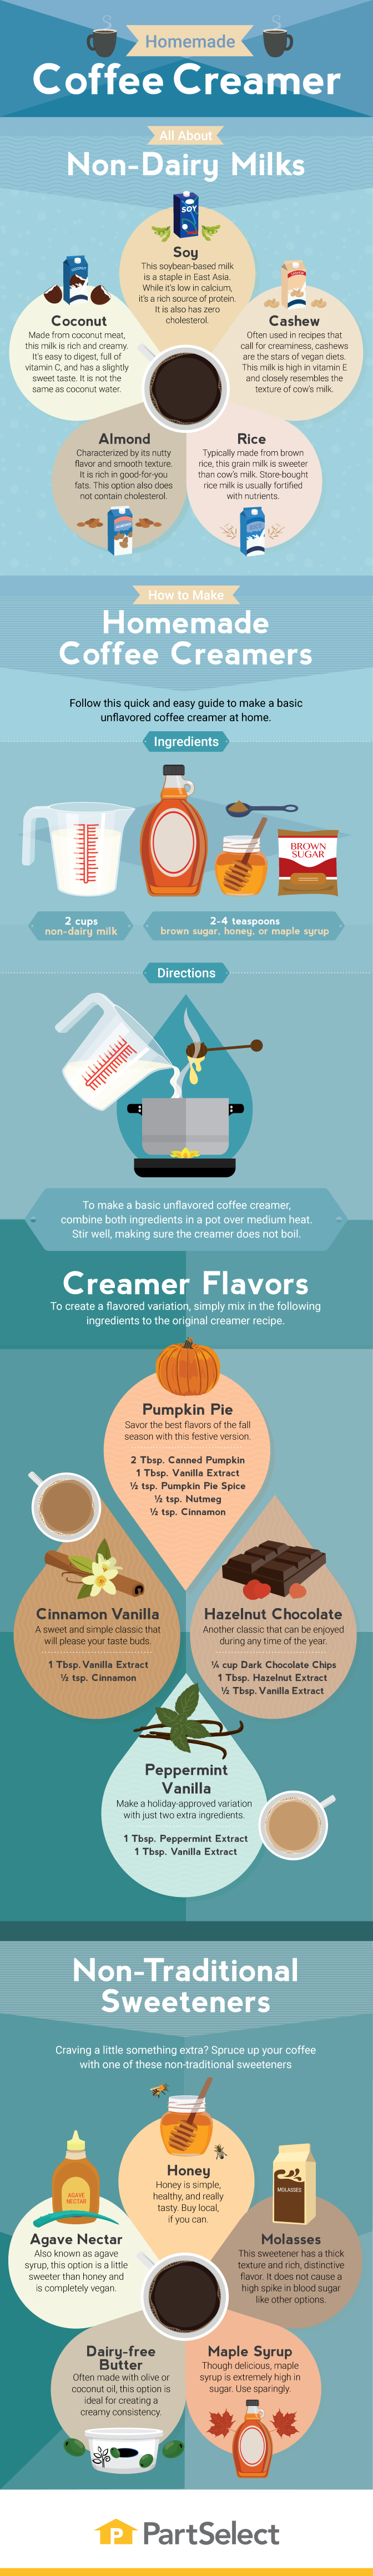 Homemade Coffee Creamers to Boost Your Coffee Shot - Infographic